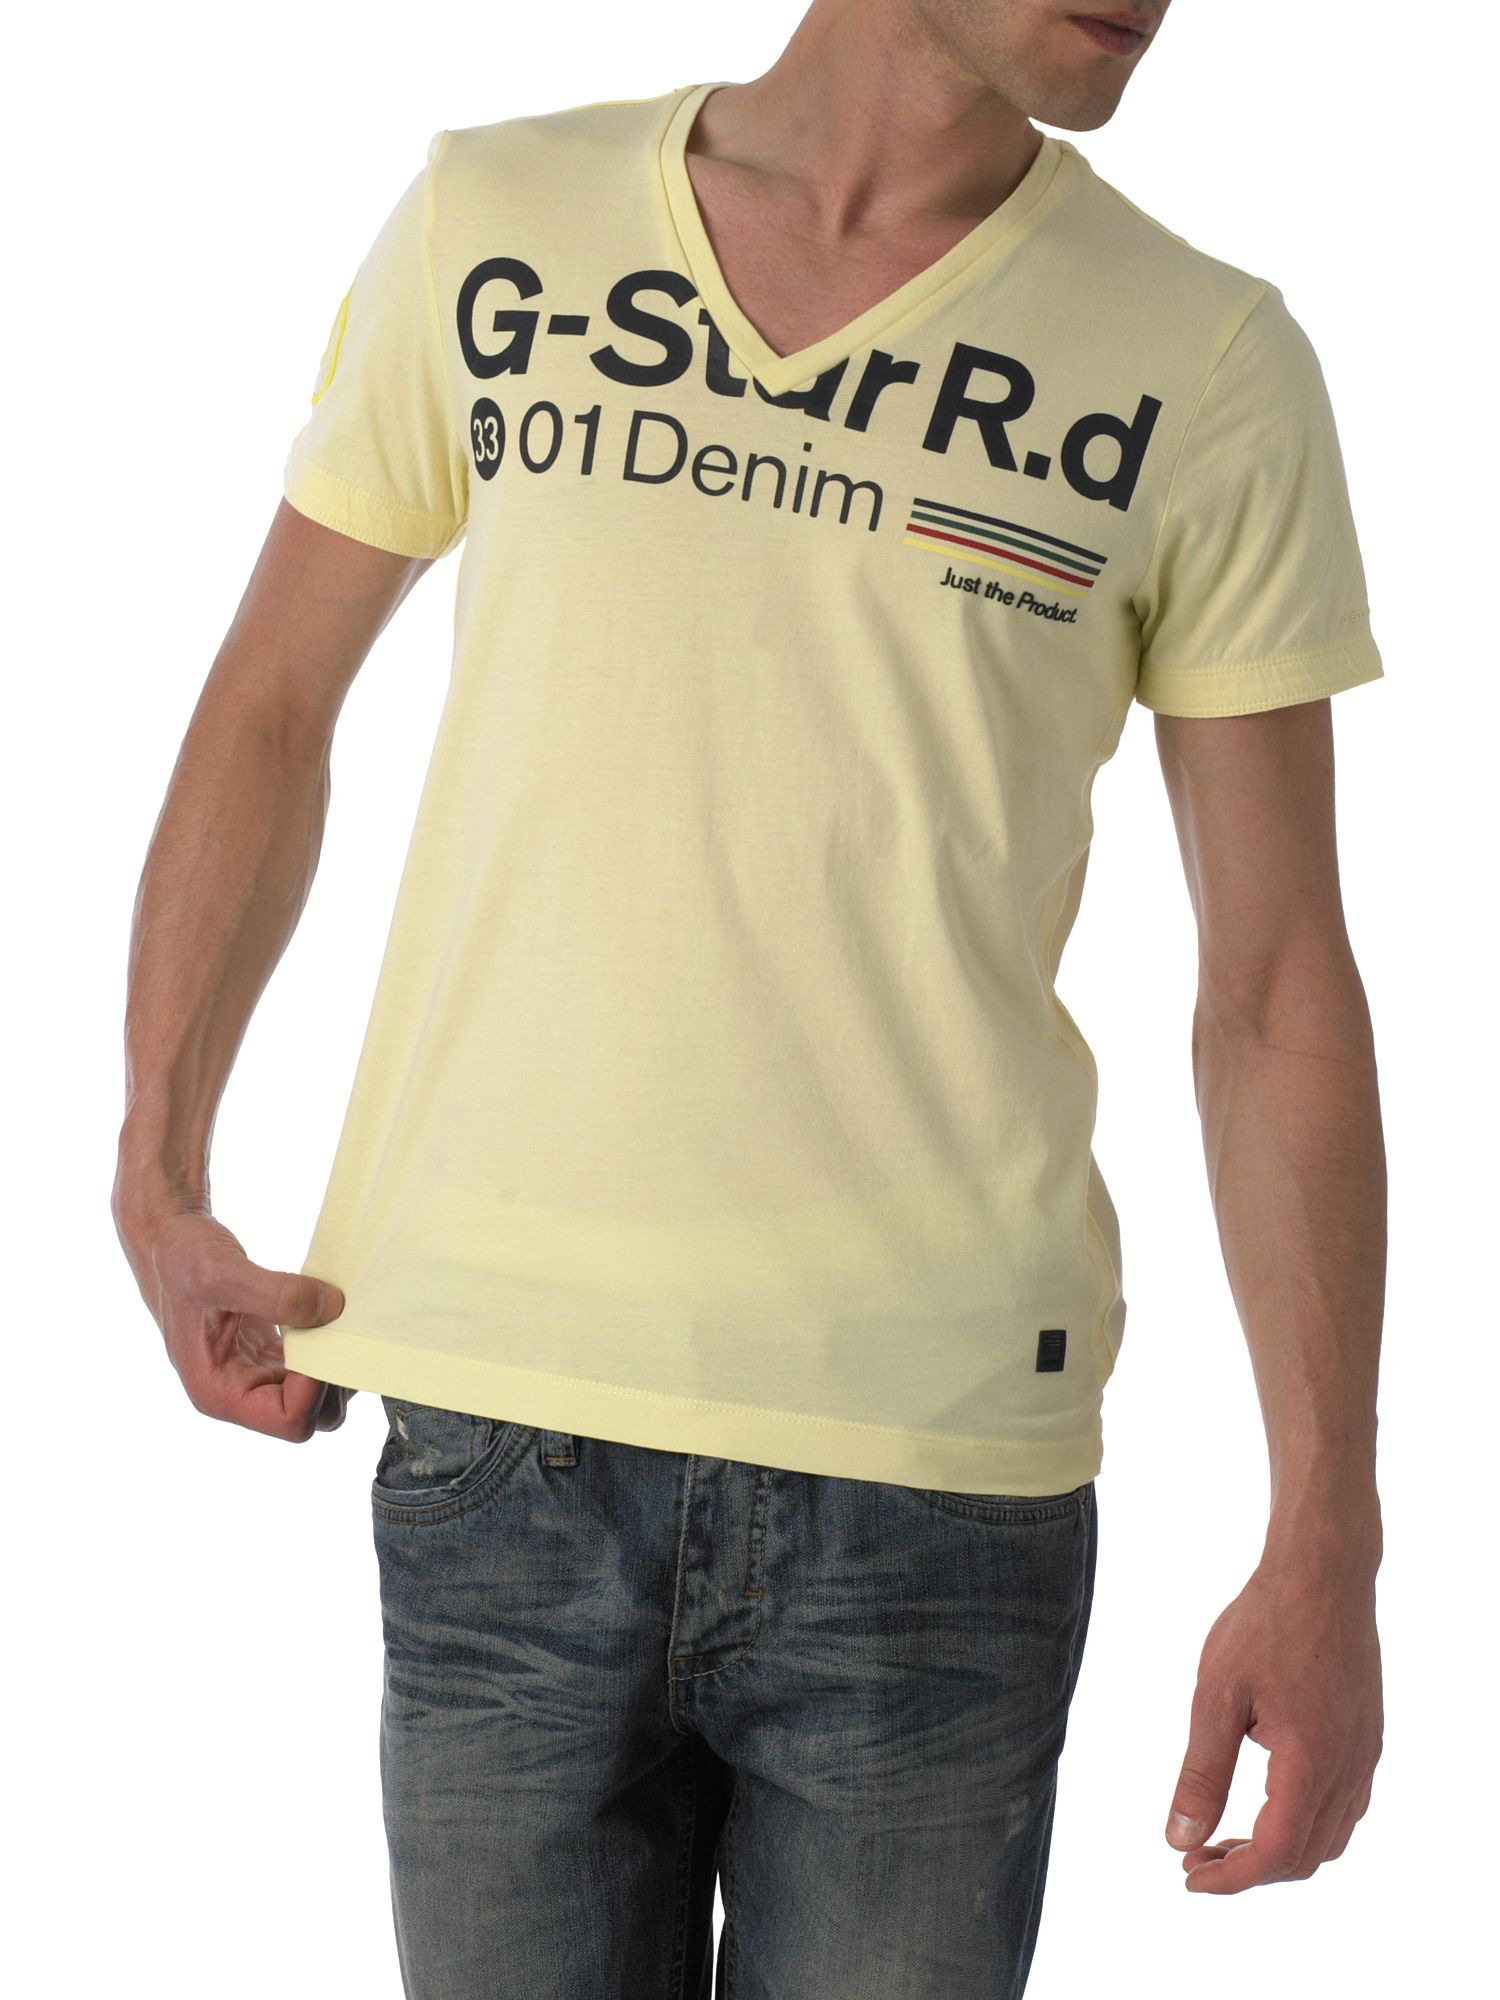 G-Star V-neck G-star T-shirt Yellow product image